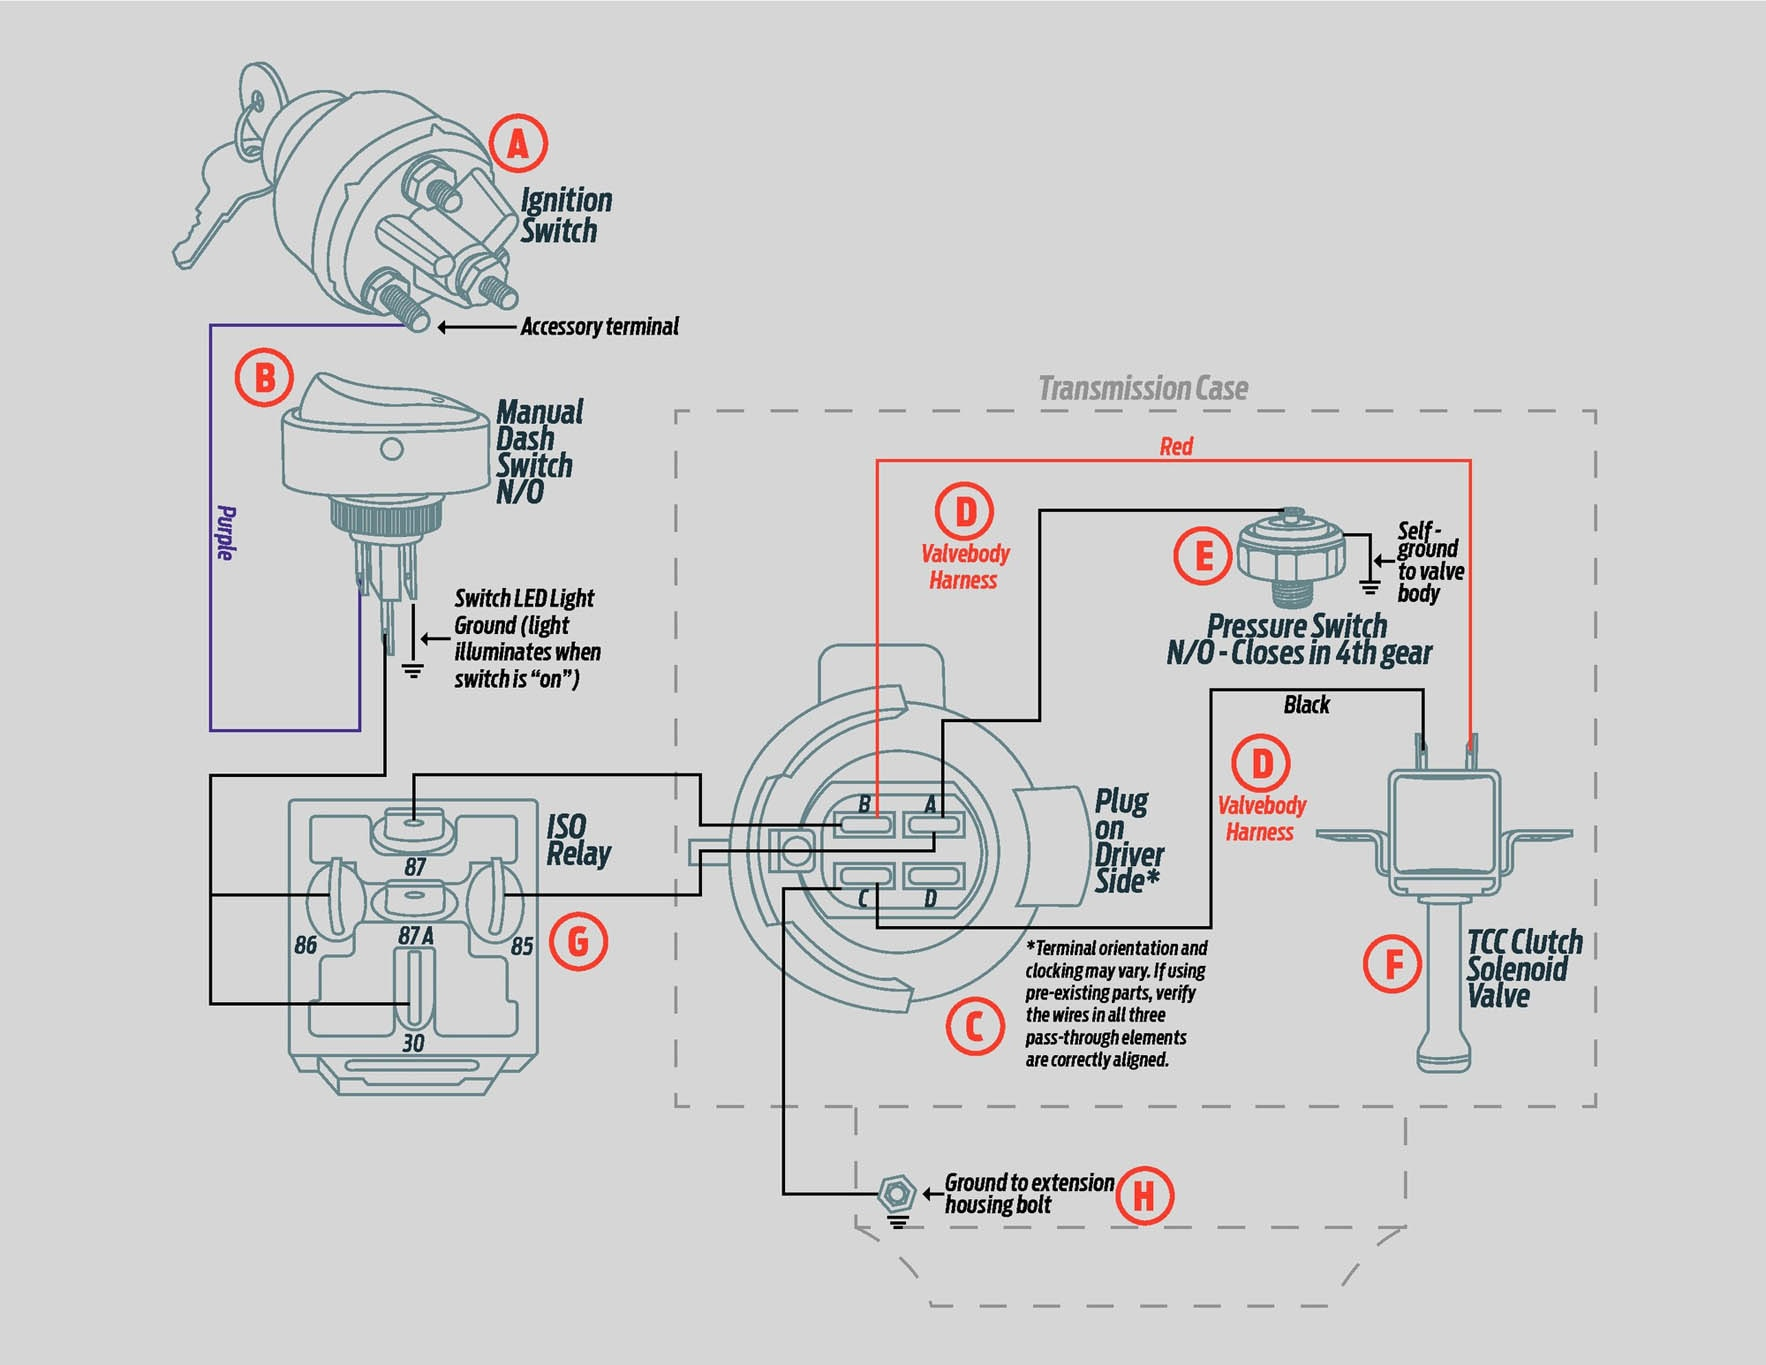 small resolution of 88 700r4 internal wiring diagram wiring diagrams konsult 4l60e wiring harness diagram besides 200r4 transmission lock up wiring